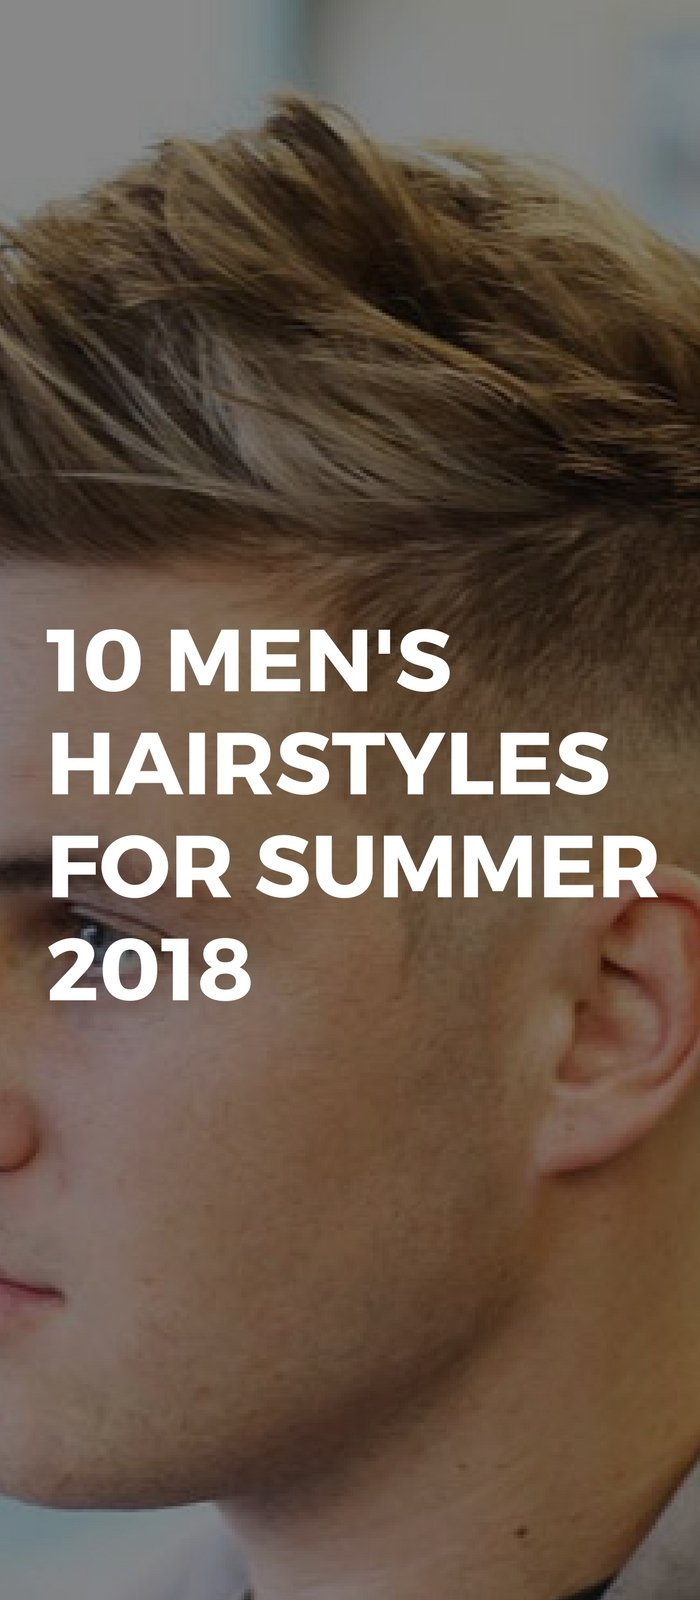 10_Men_s_Hairstyles_For_Summer_2018